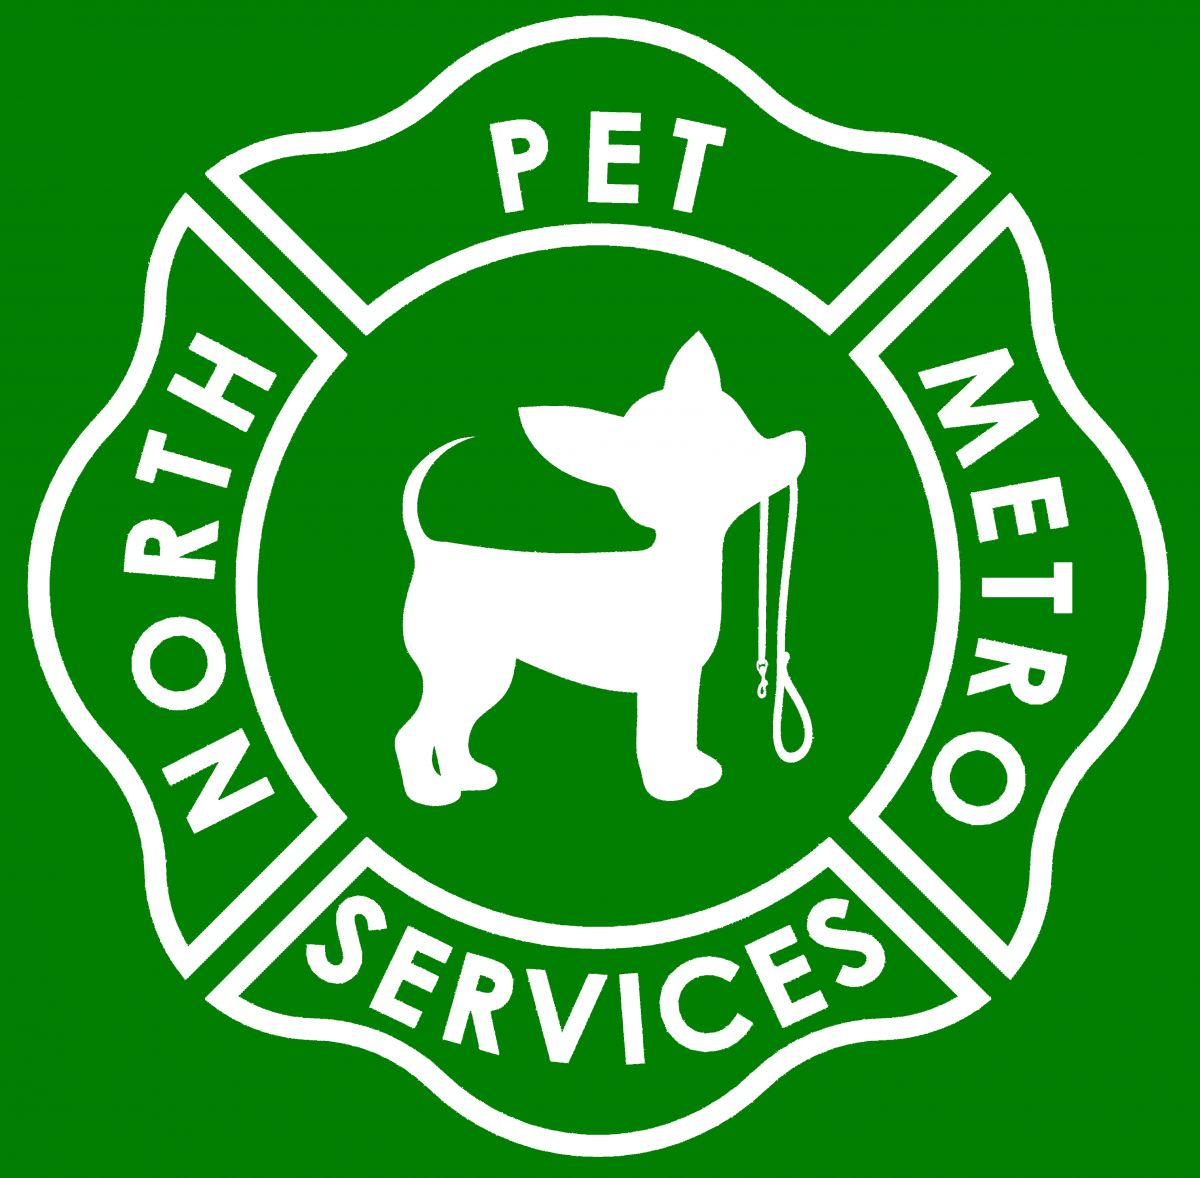 North/South Metro Pet Services